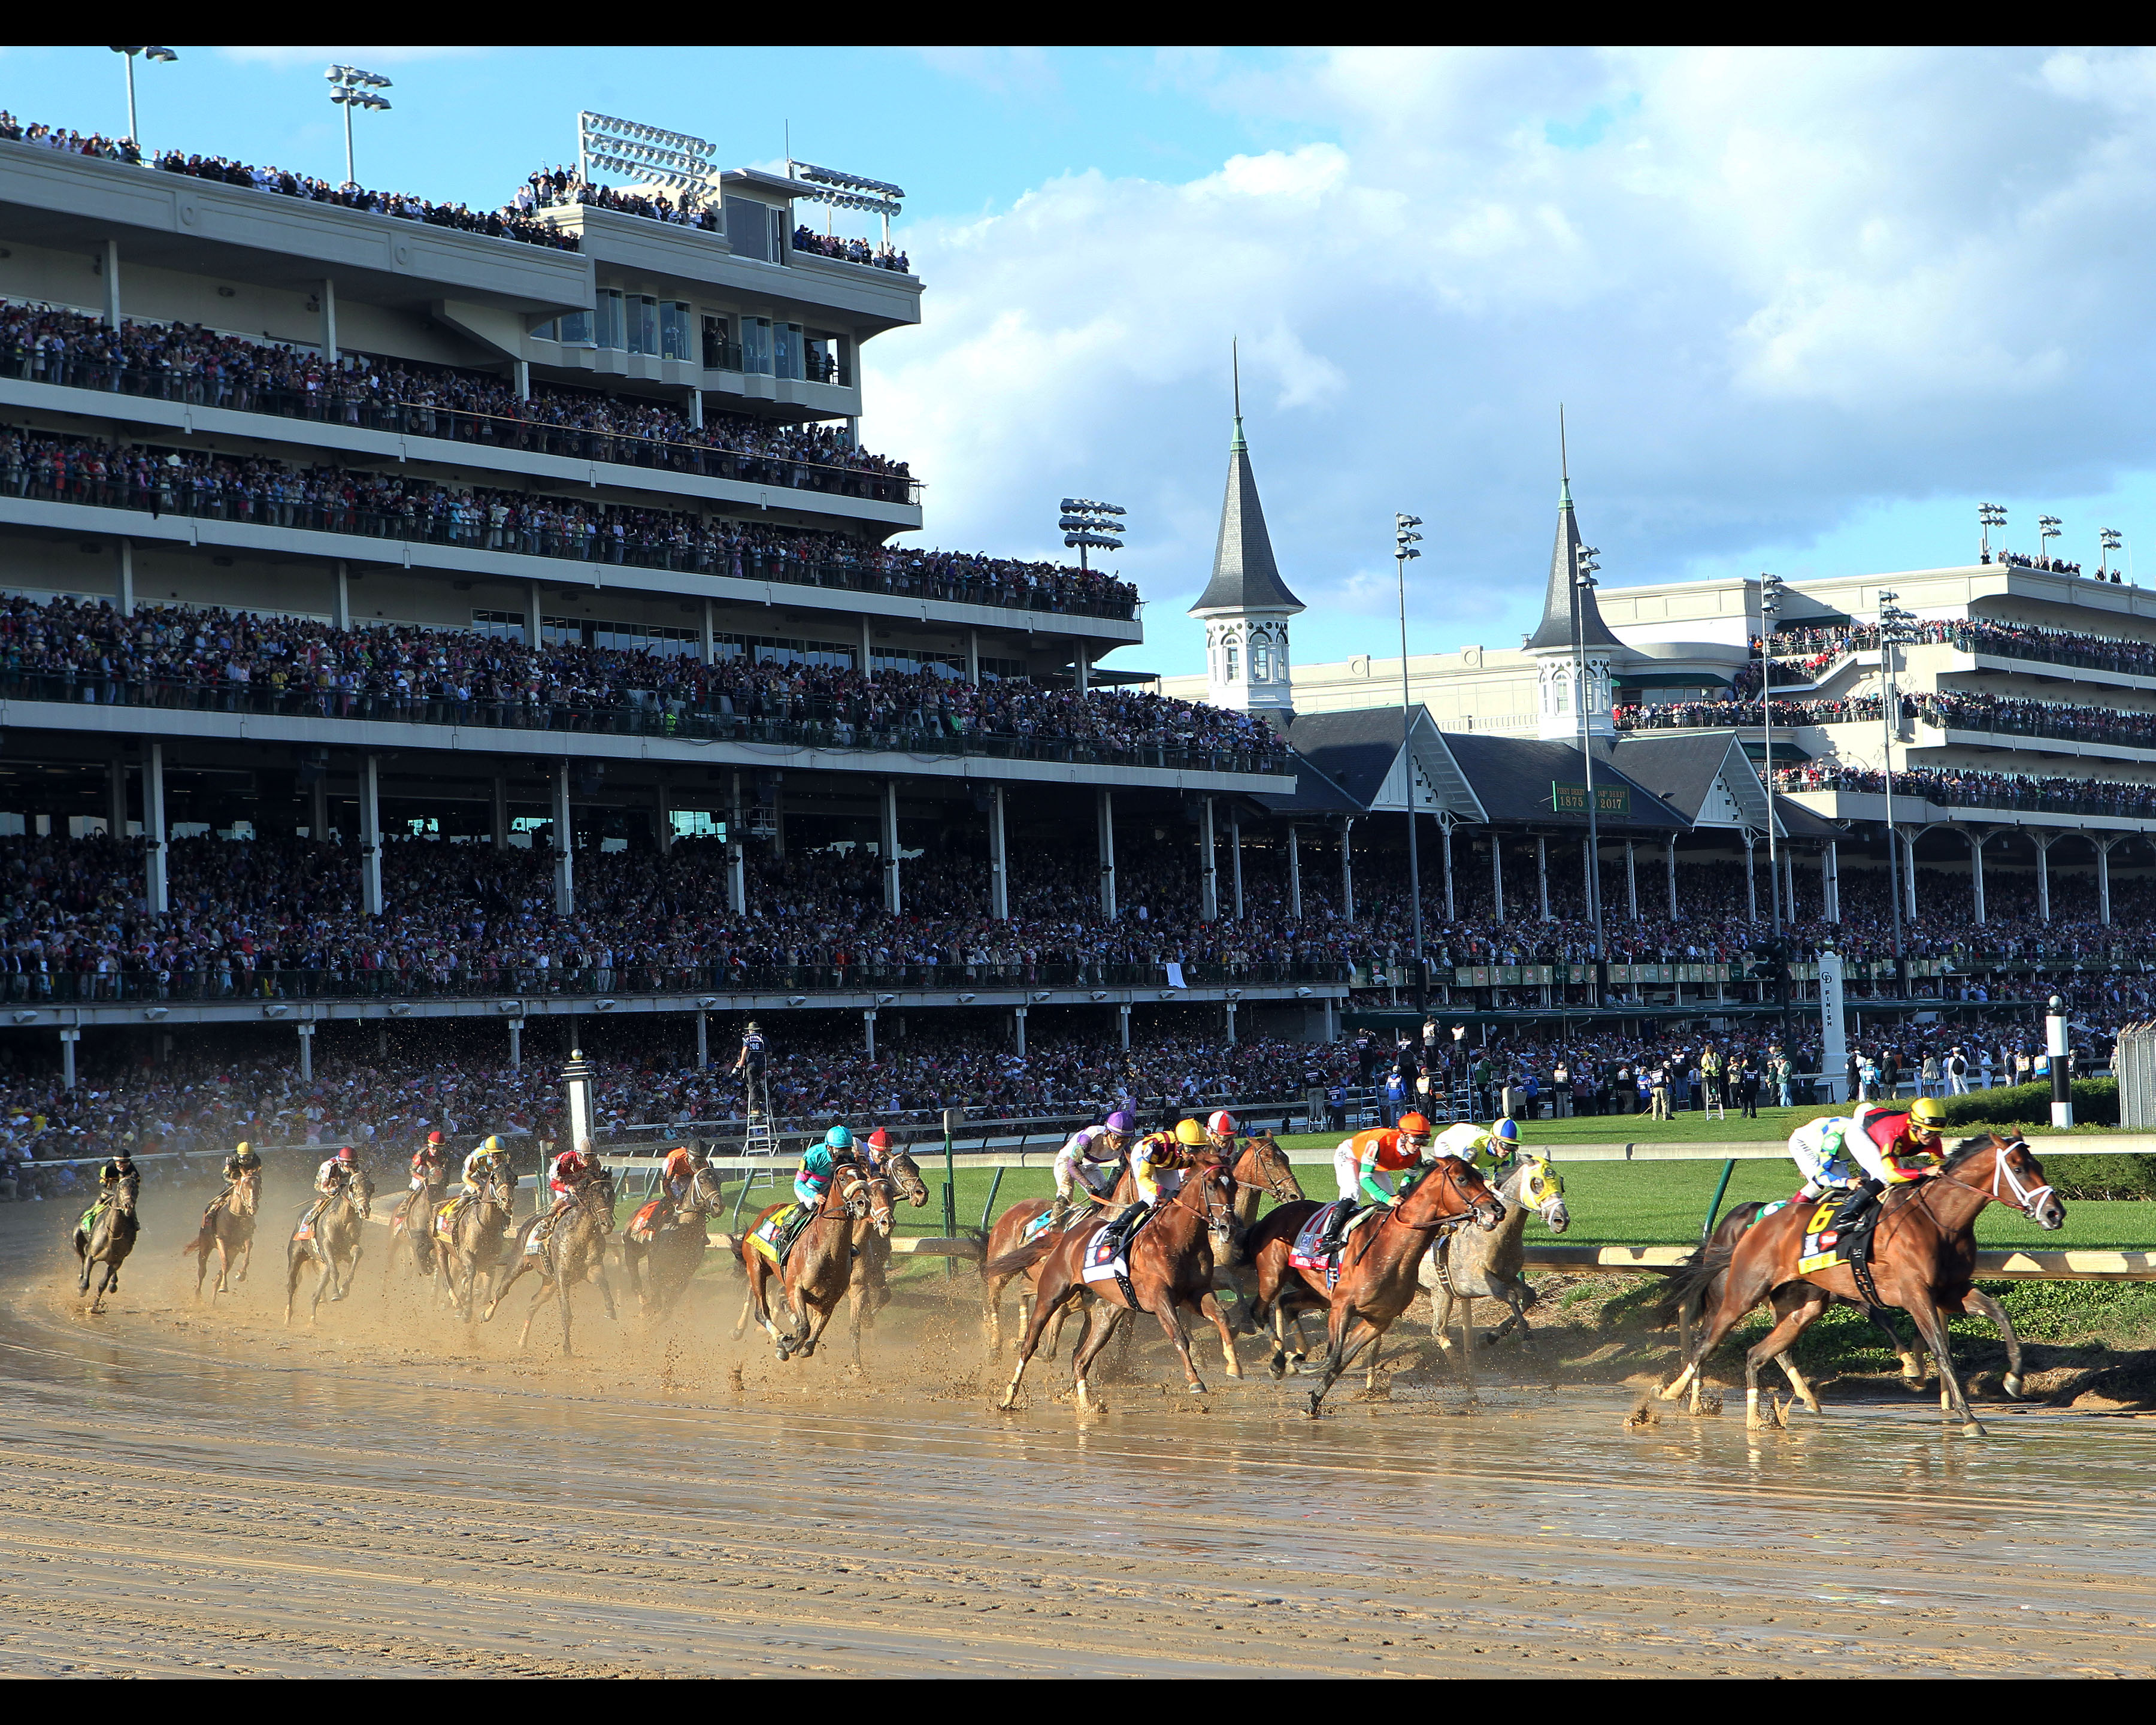 Trackside betting louisville ky airport digital virtual currency and bitcoins stock